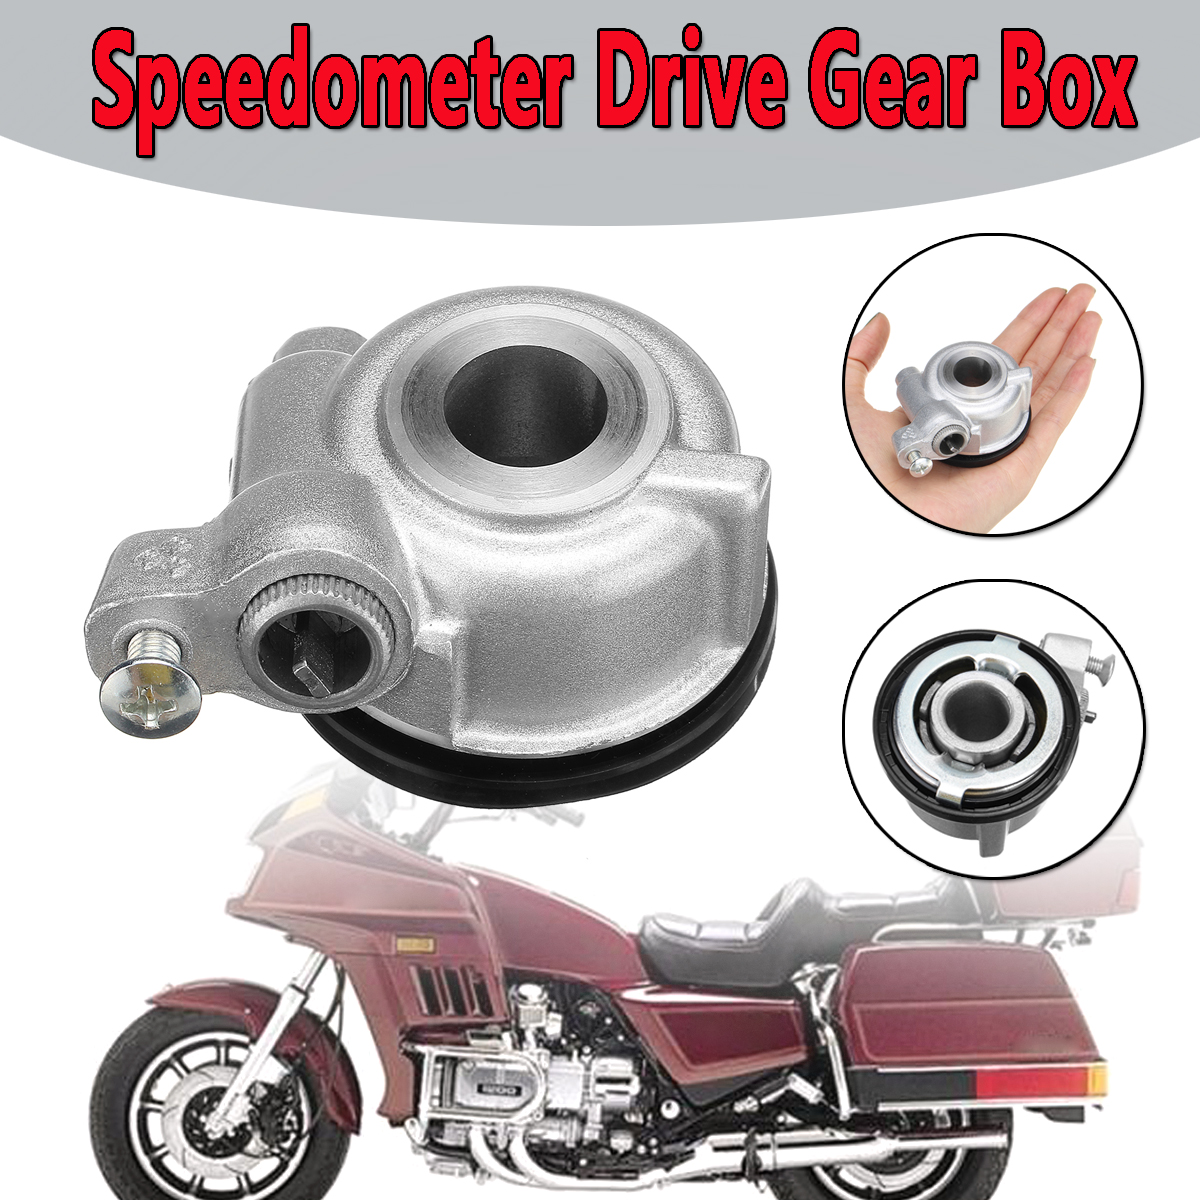 medium resolution of motorcycle speedometer drive gear box new fits for honda goldwing gl1200 1984 1987 scooter parts mg9 013 in covers ornamental mouldings from automobiles